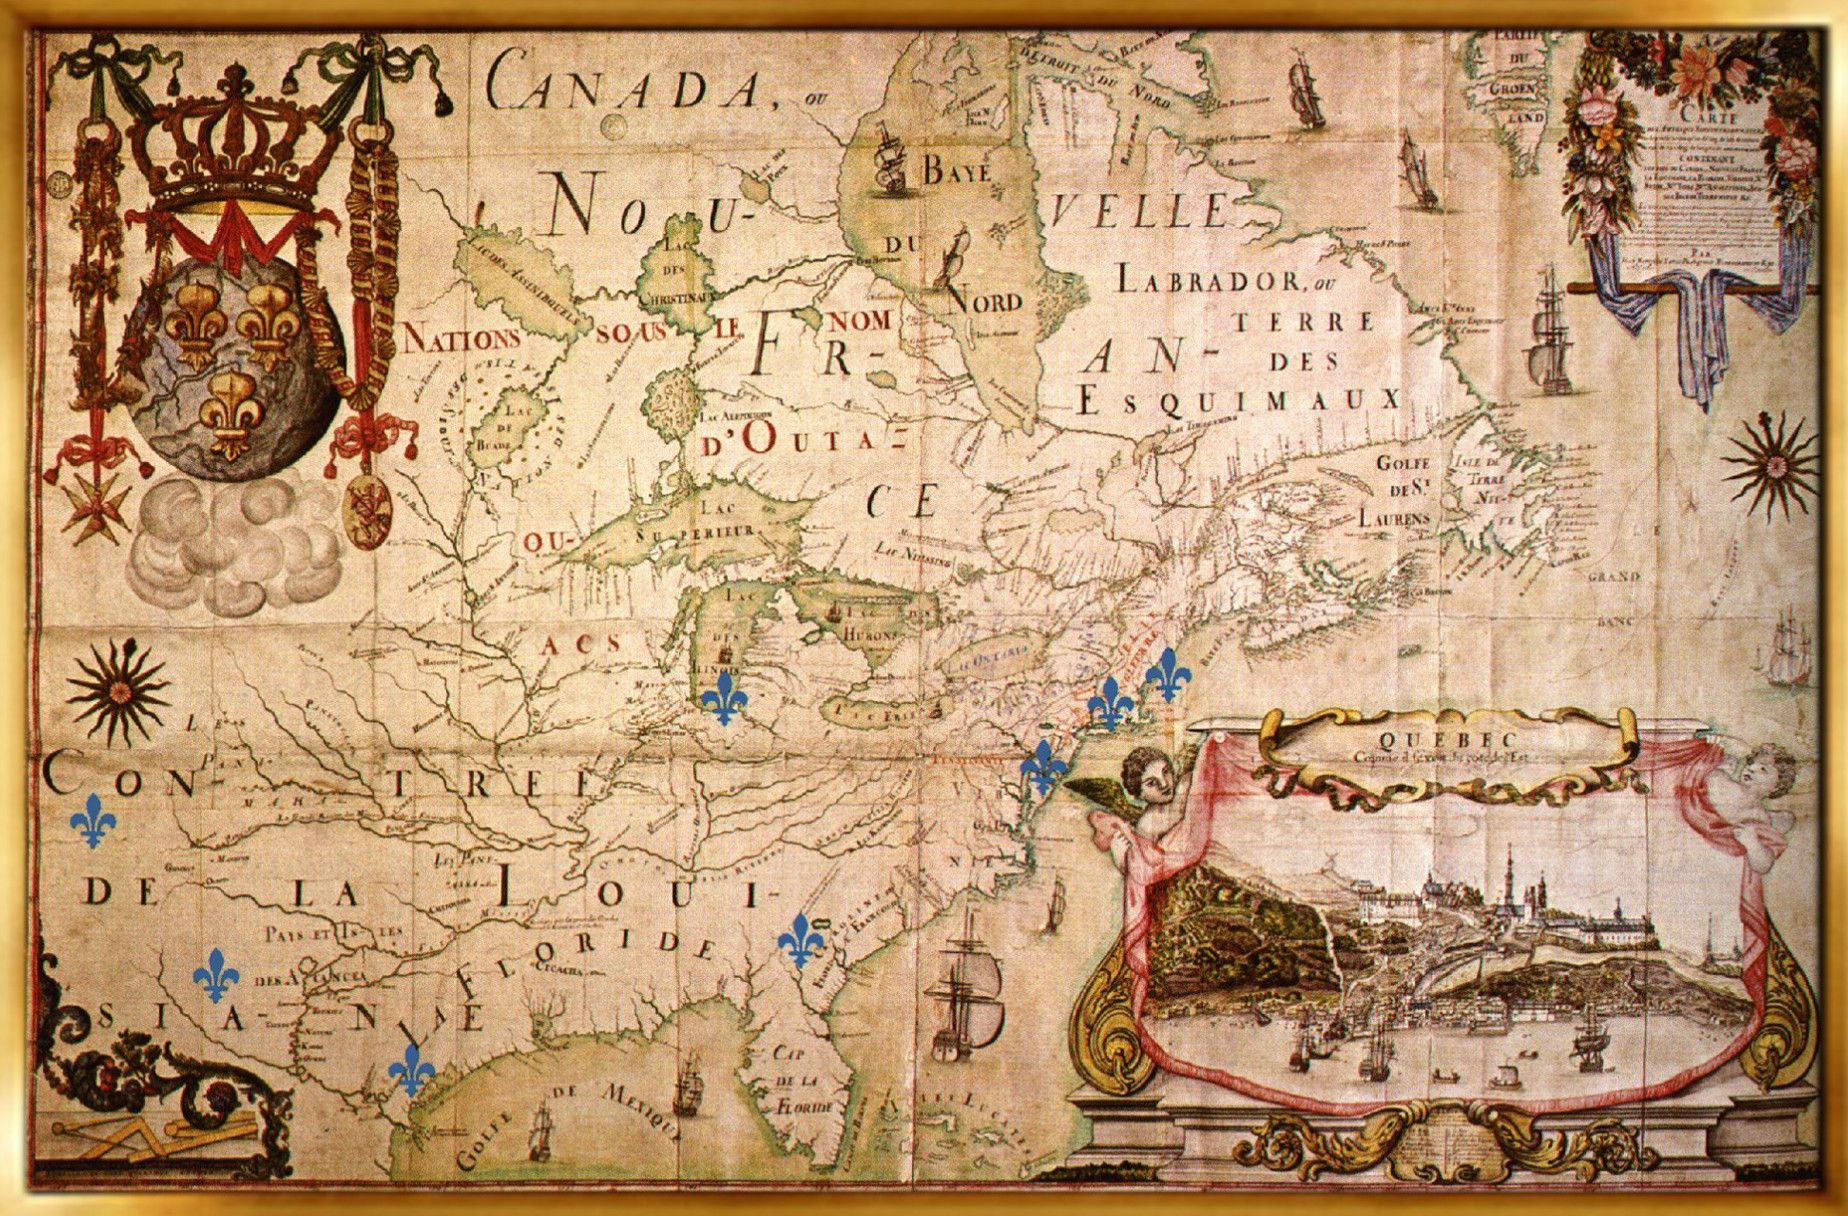 Old world map of new france 1663 maps pinterest mapas old world map of new france 1663 gumiabroncs Choice Image